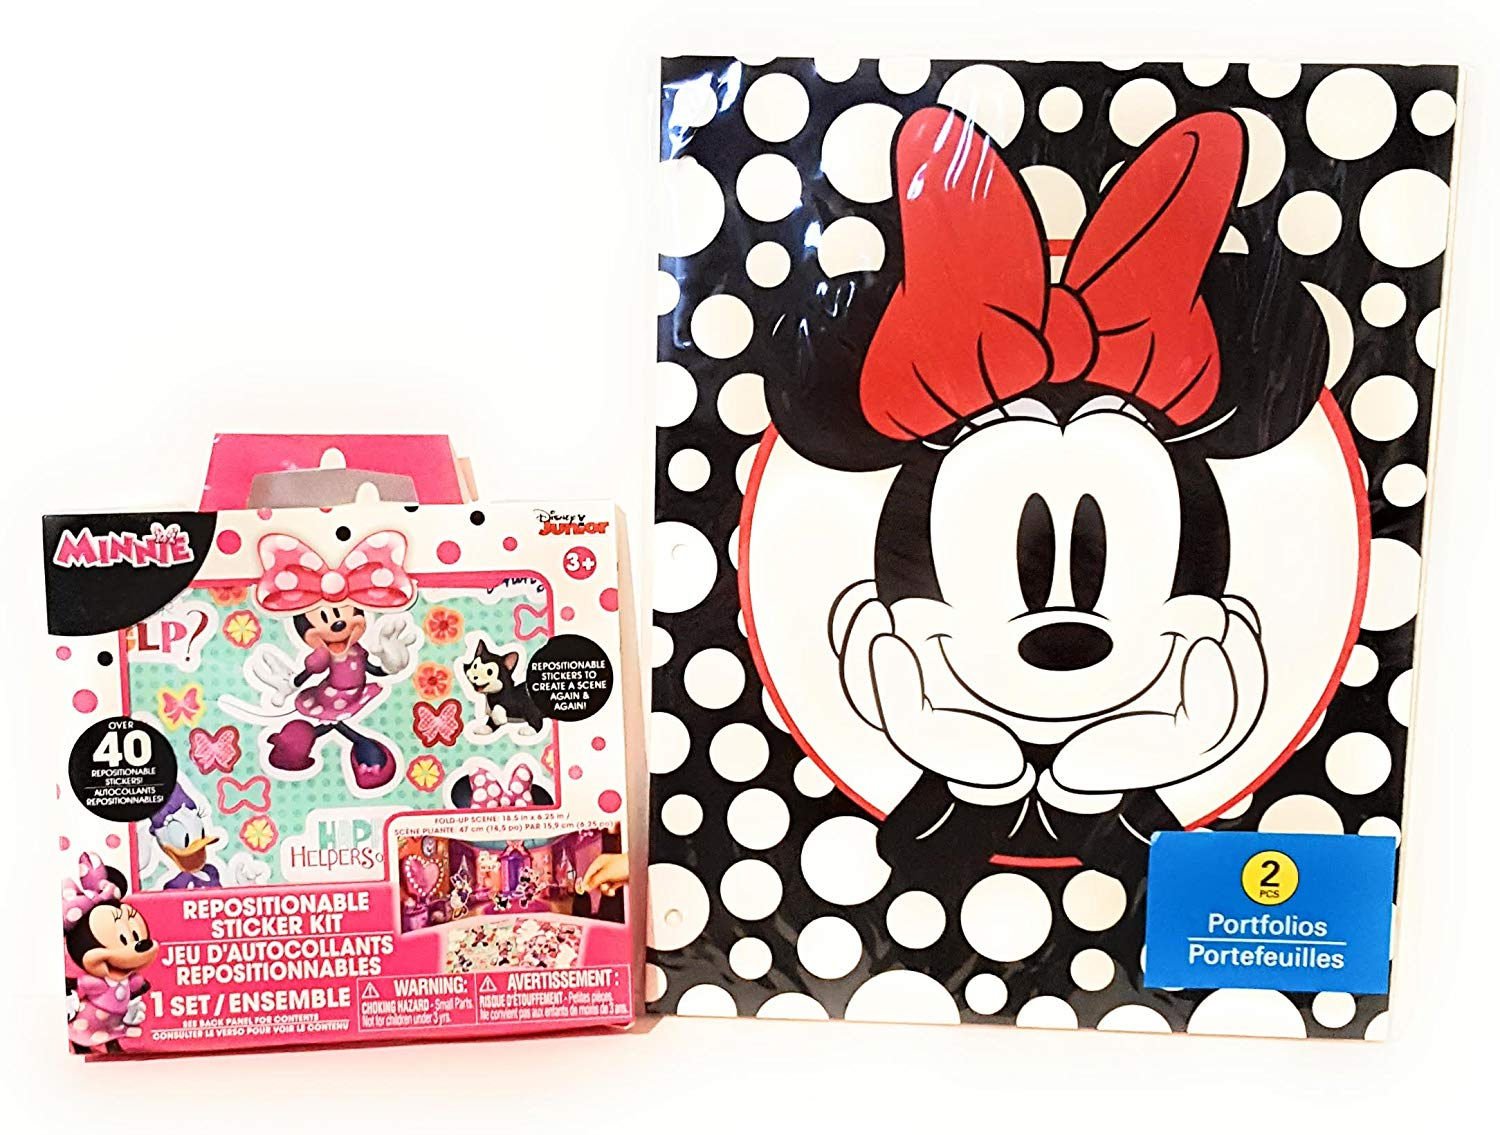 Back to School Student Toddler Pre-school Elementary Middle School Classroom Teacher Room Classroom Room Kids Pocket Folder MINNIE MOUSE BONUS STICKERS